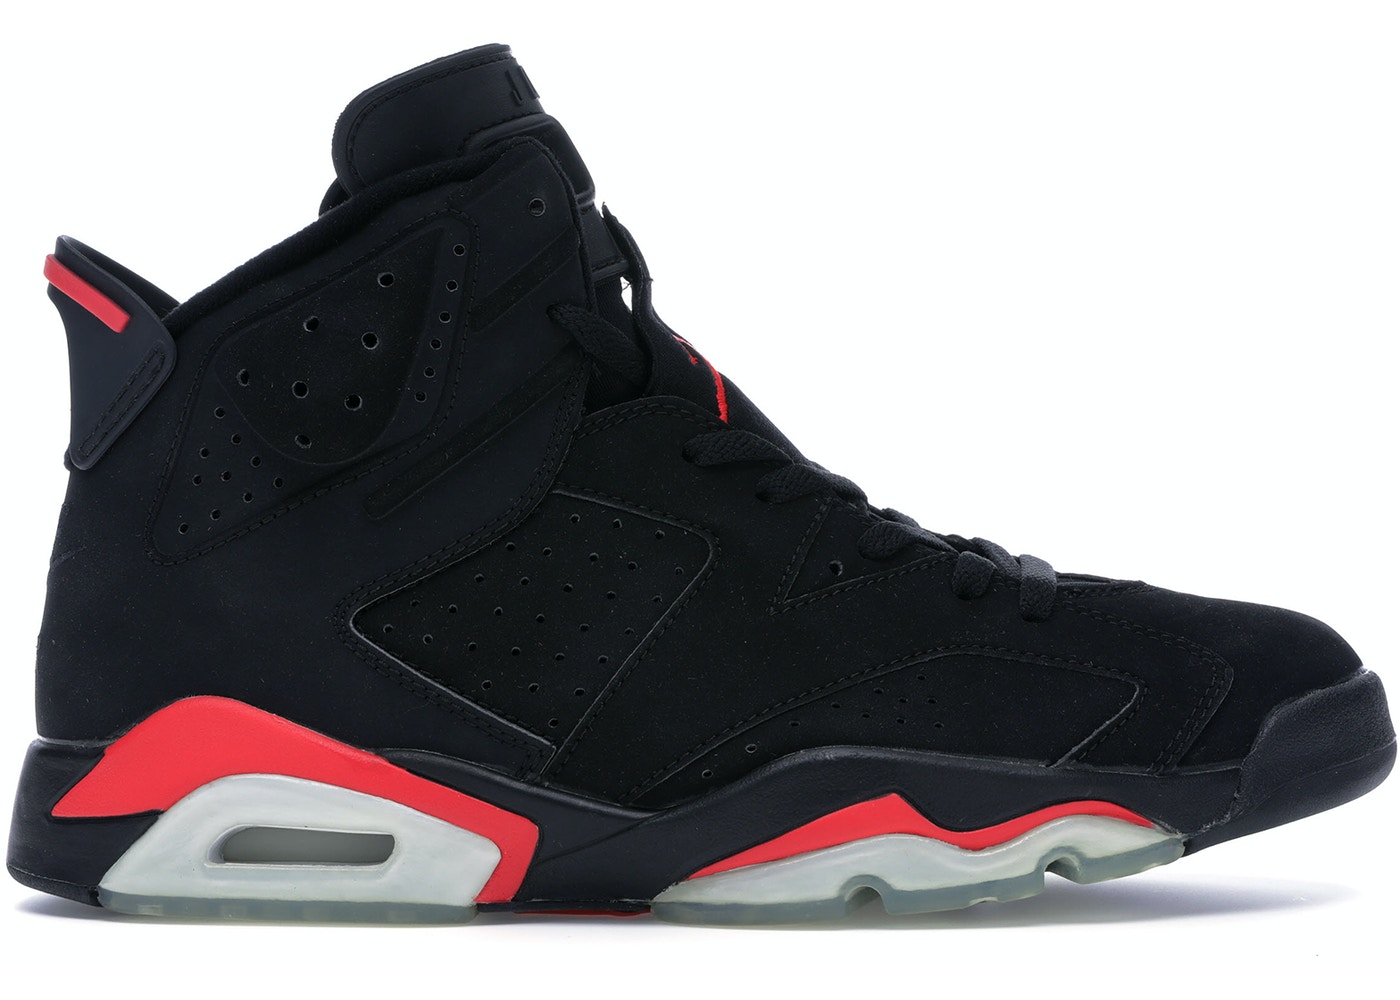 b9d9655d09c Jordan 6 Retro Infrared Black (2000) - 136038-061